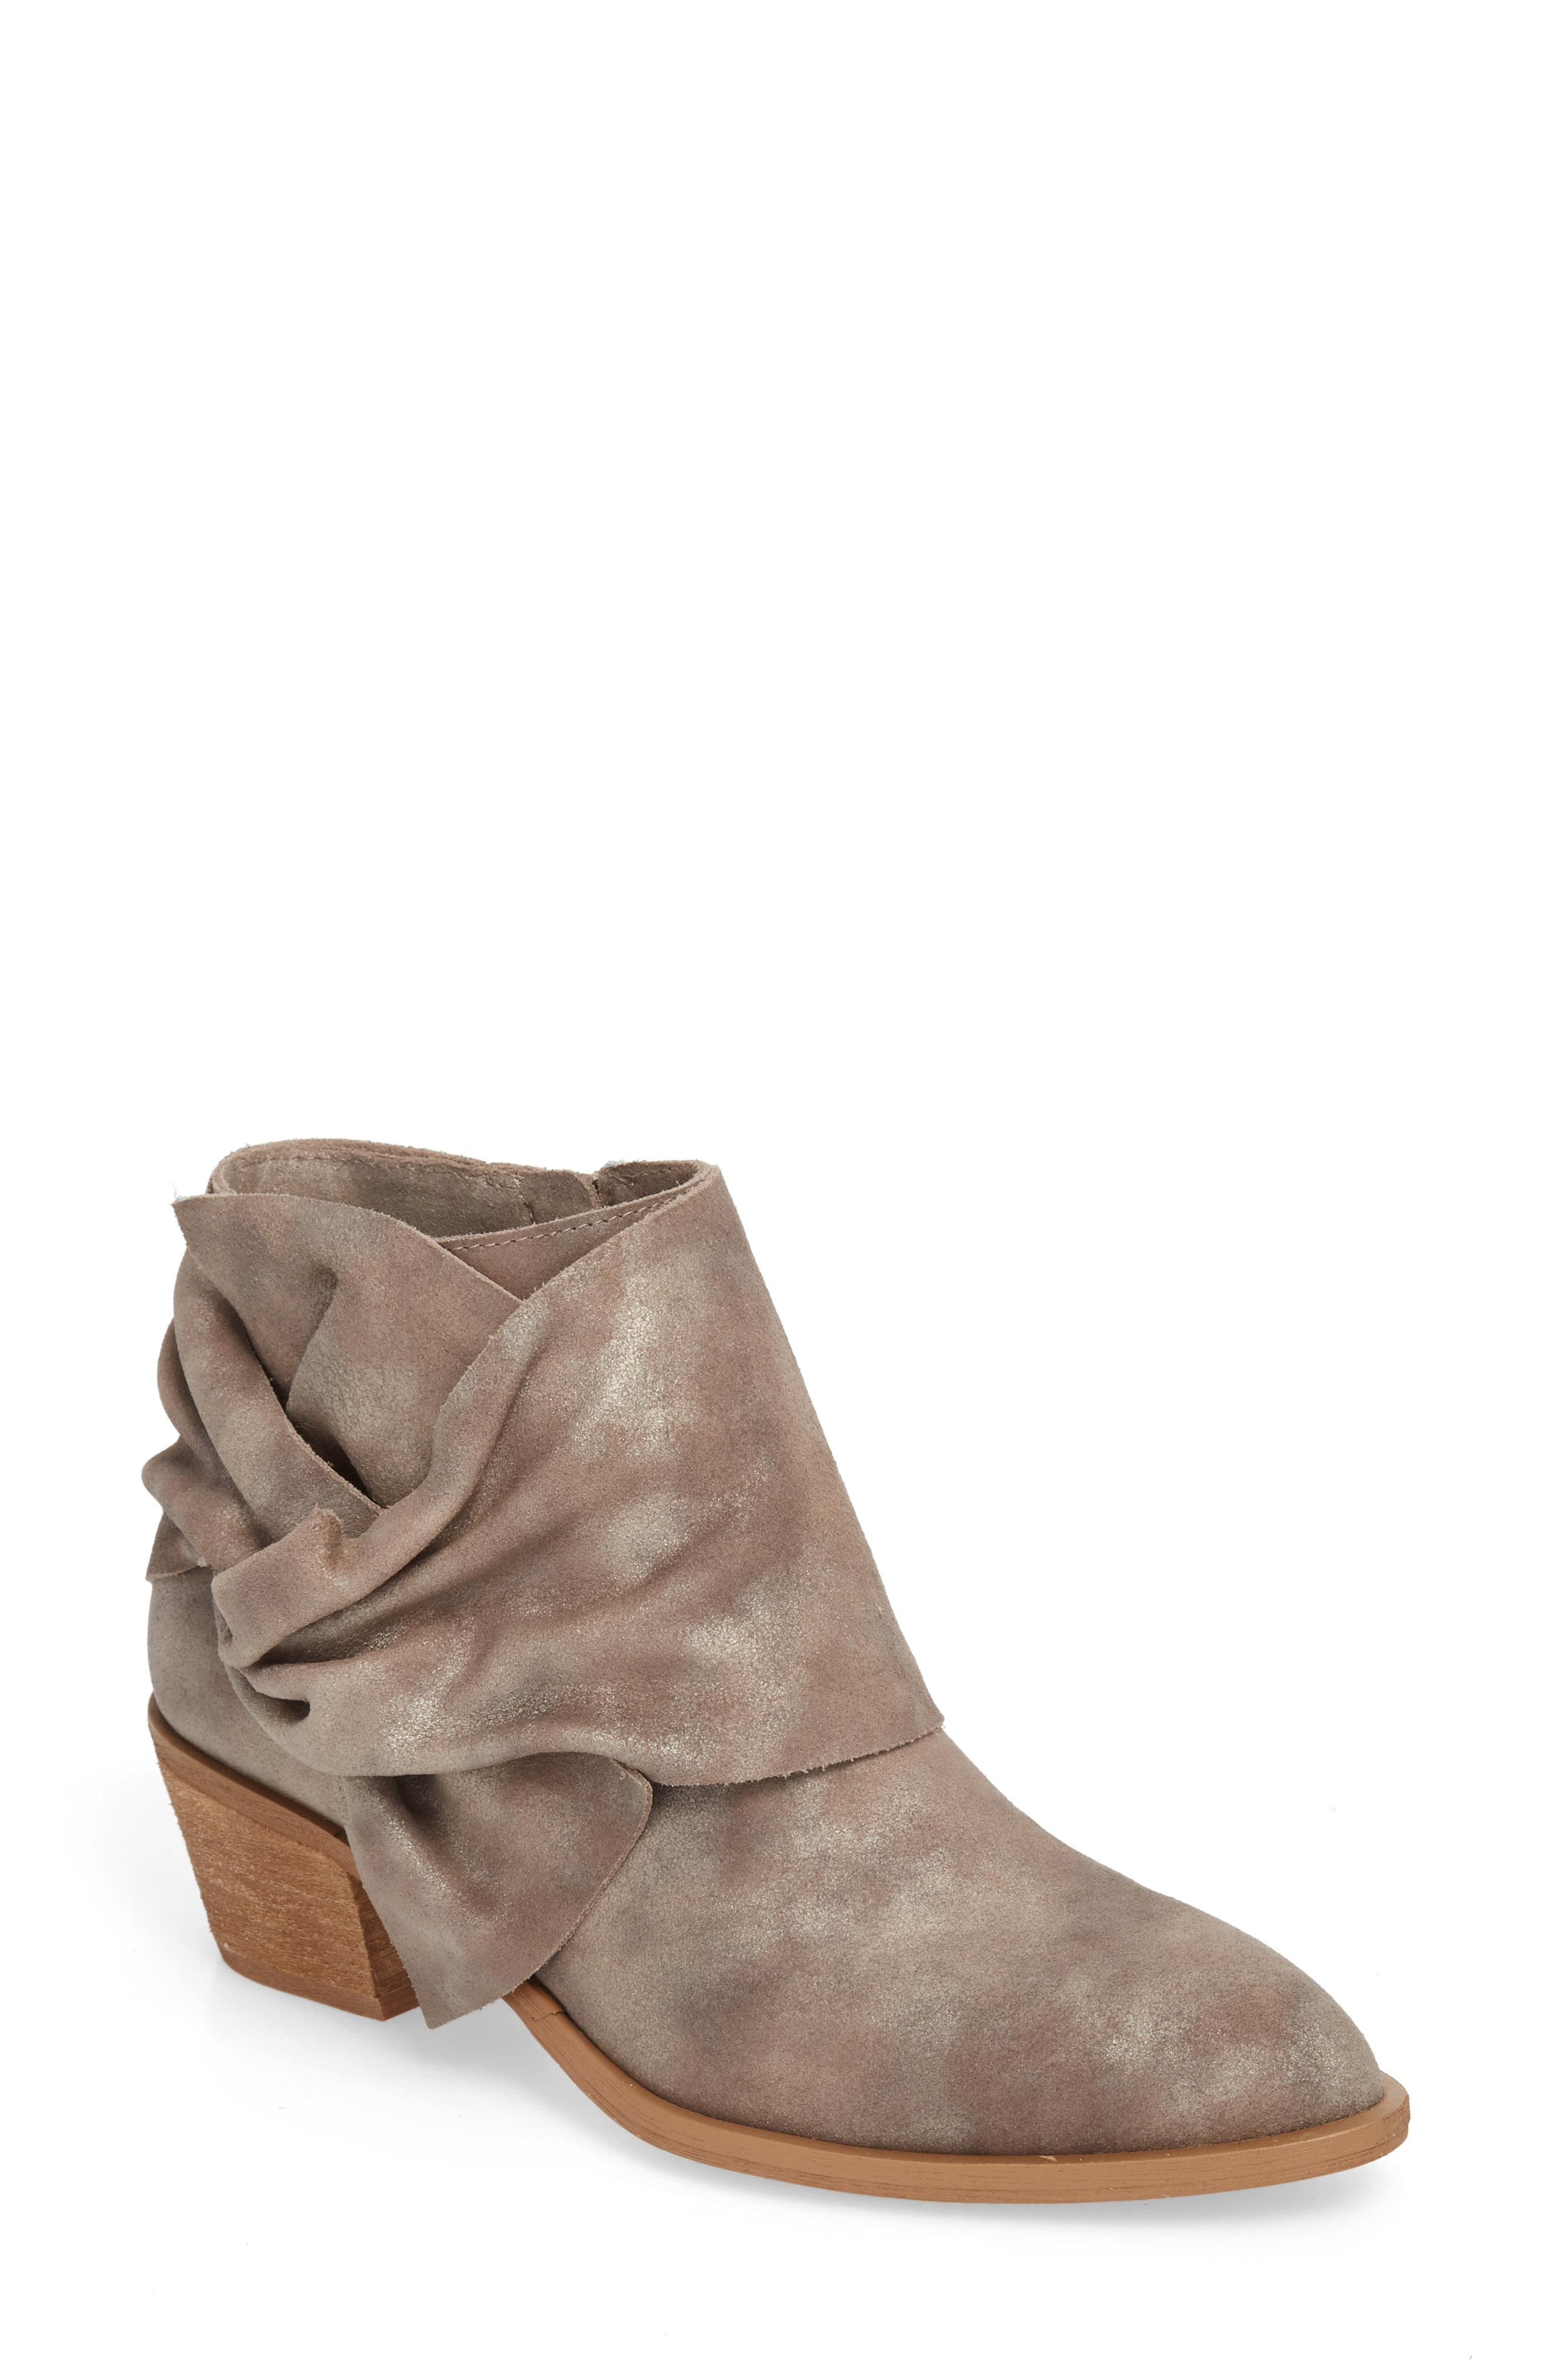 01471ac6734 Lyst - Sole Society Natalyia Bootie in Gray